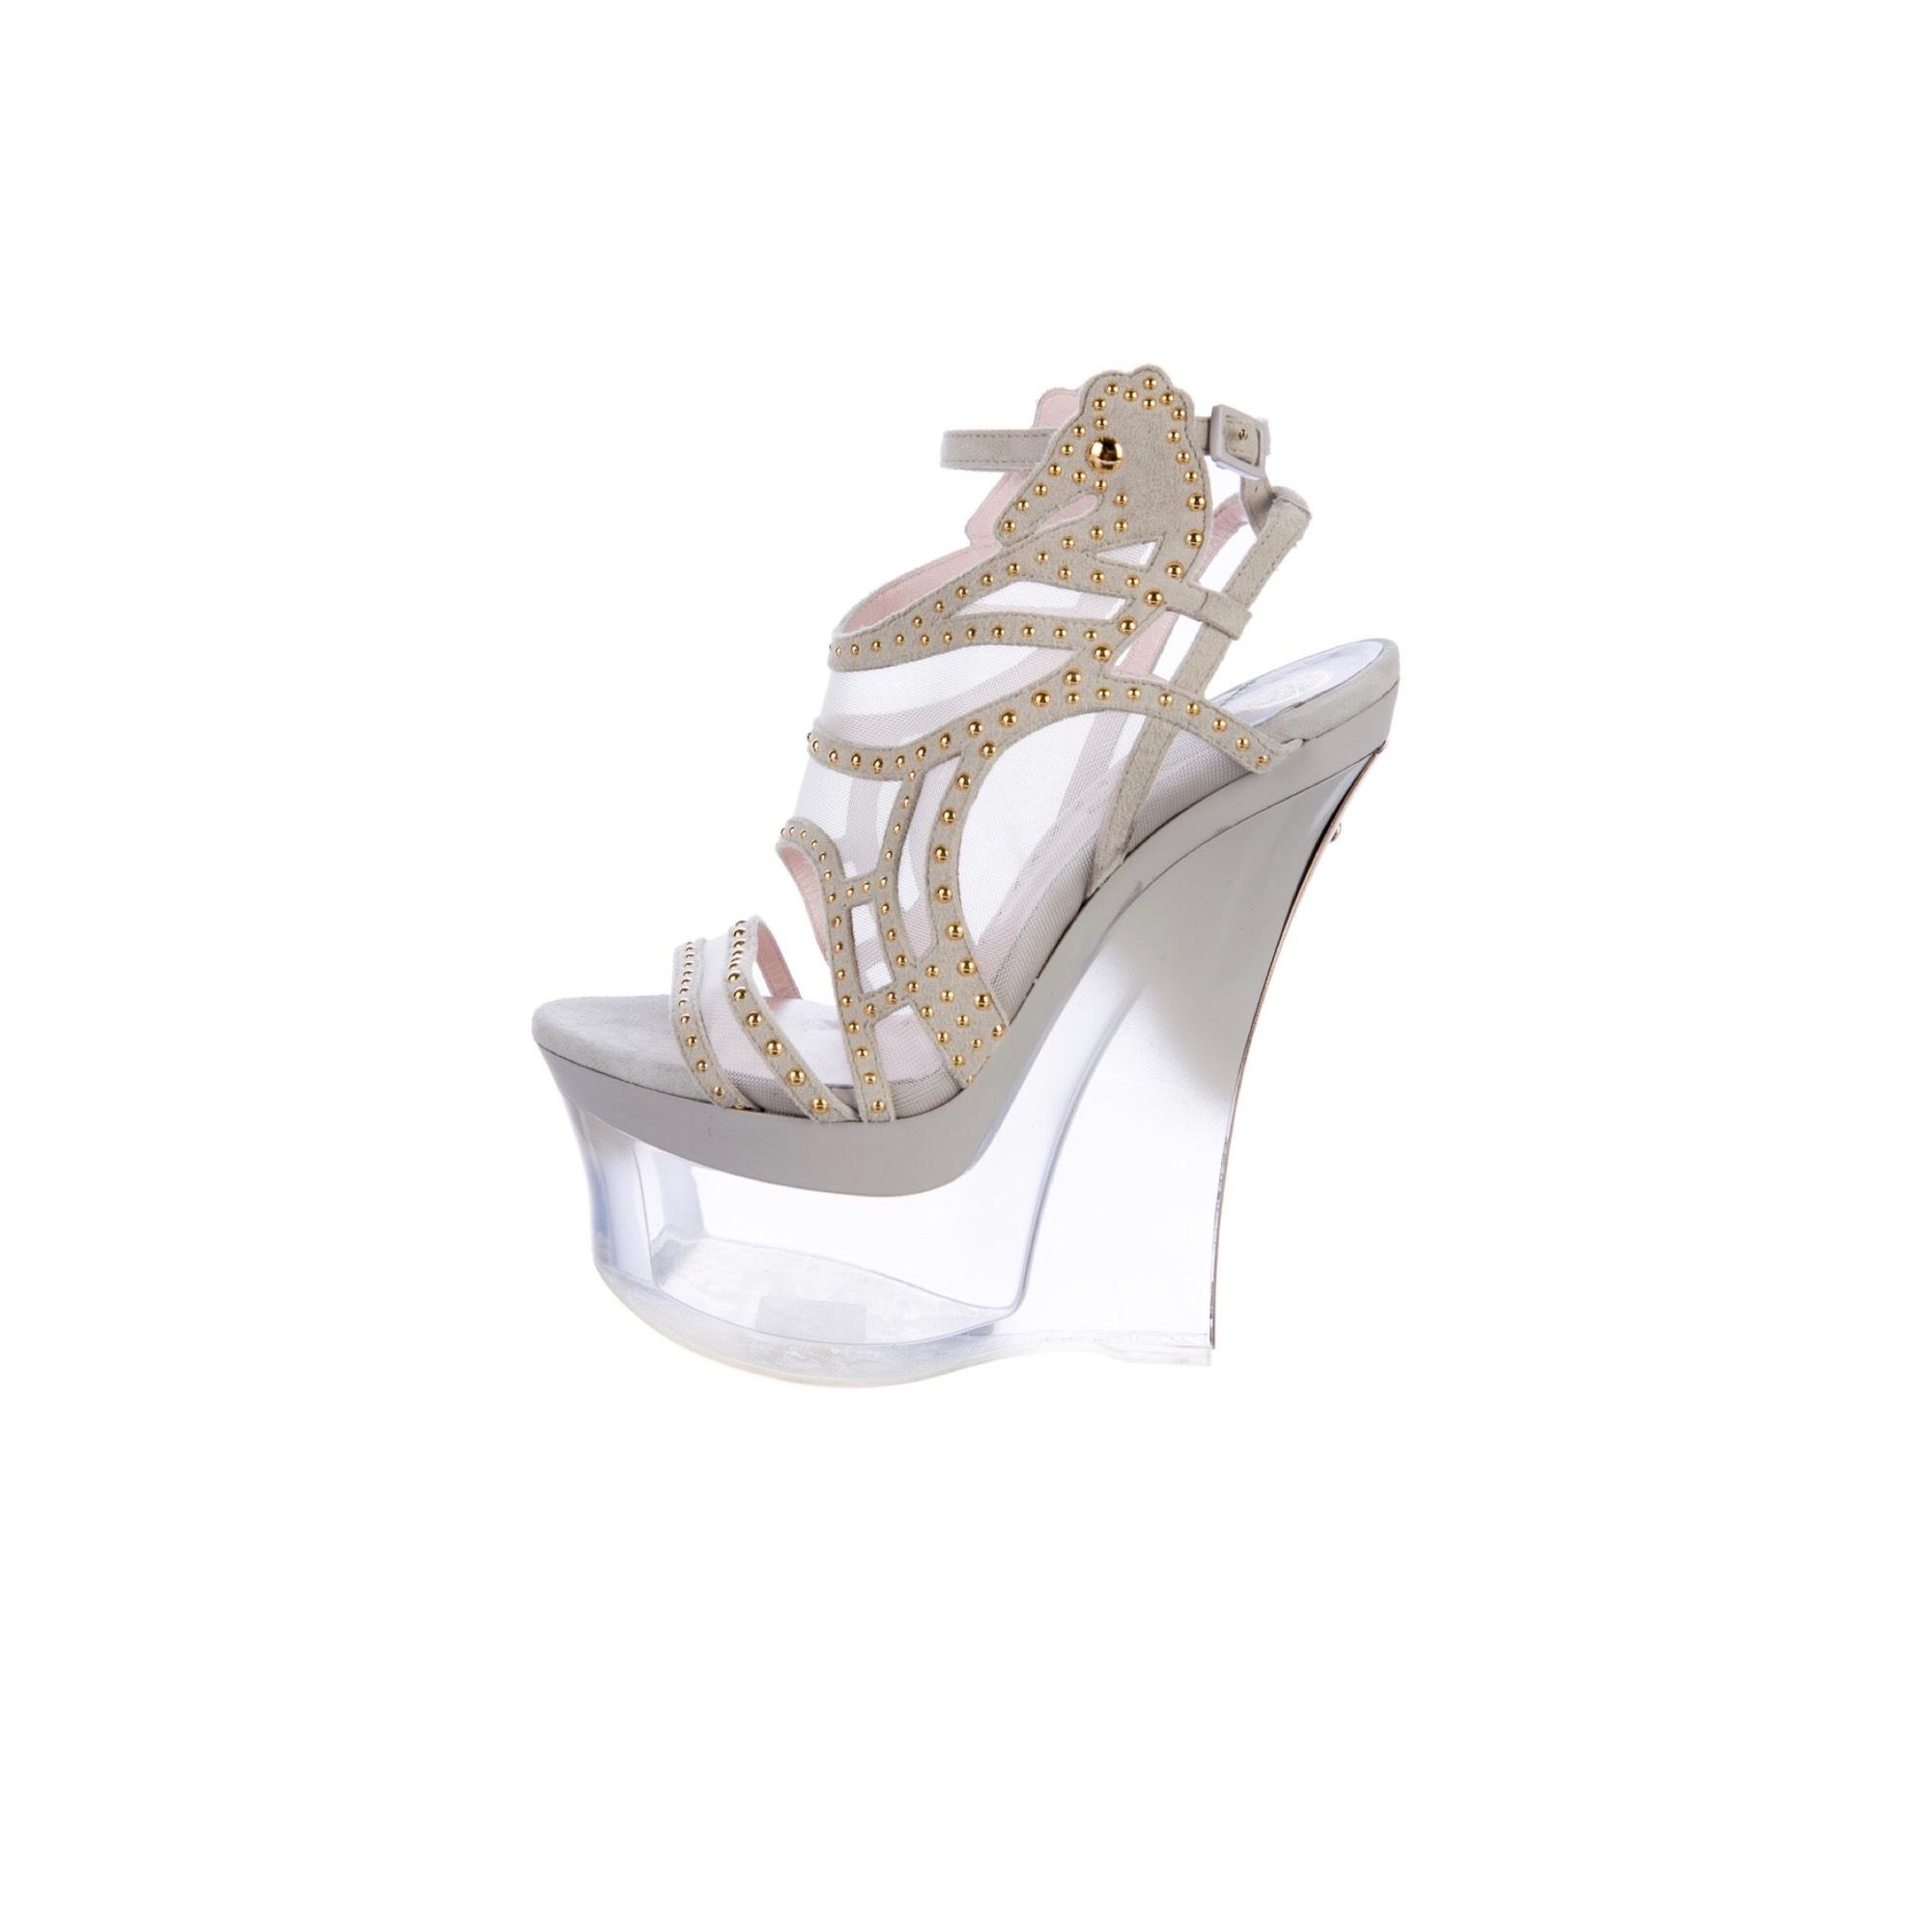 5608e2d501c9 Versace Perspex Sandals Wedges Wedges Wedges Size EU 40 (Approx. US 10)  Regular (M